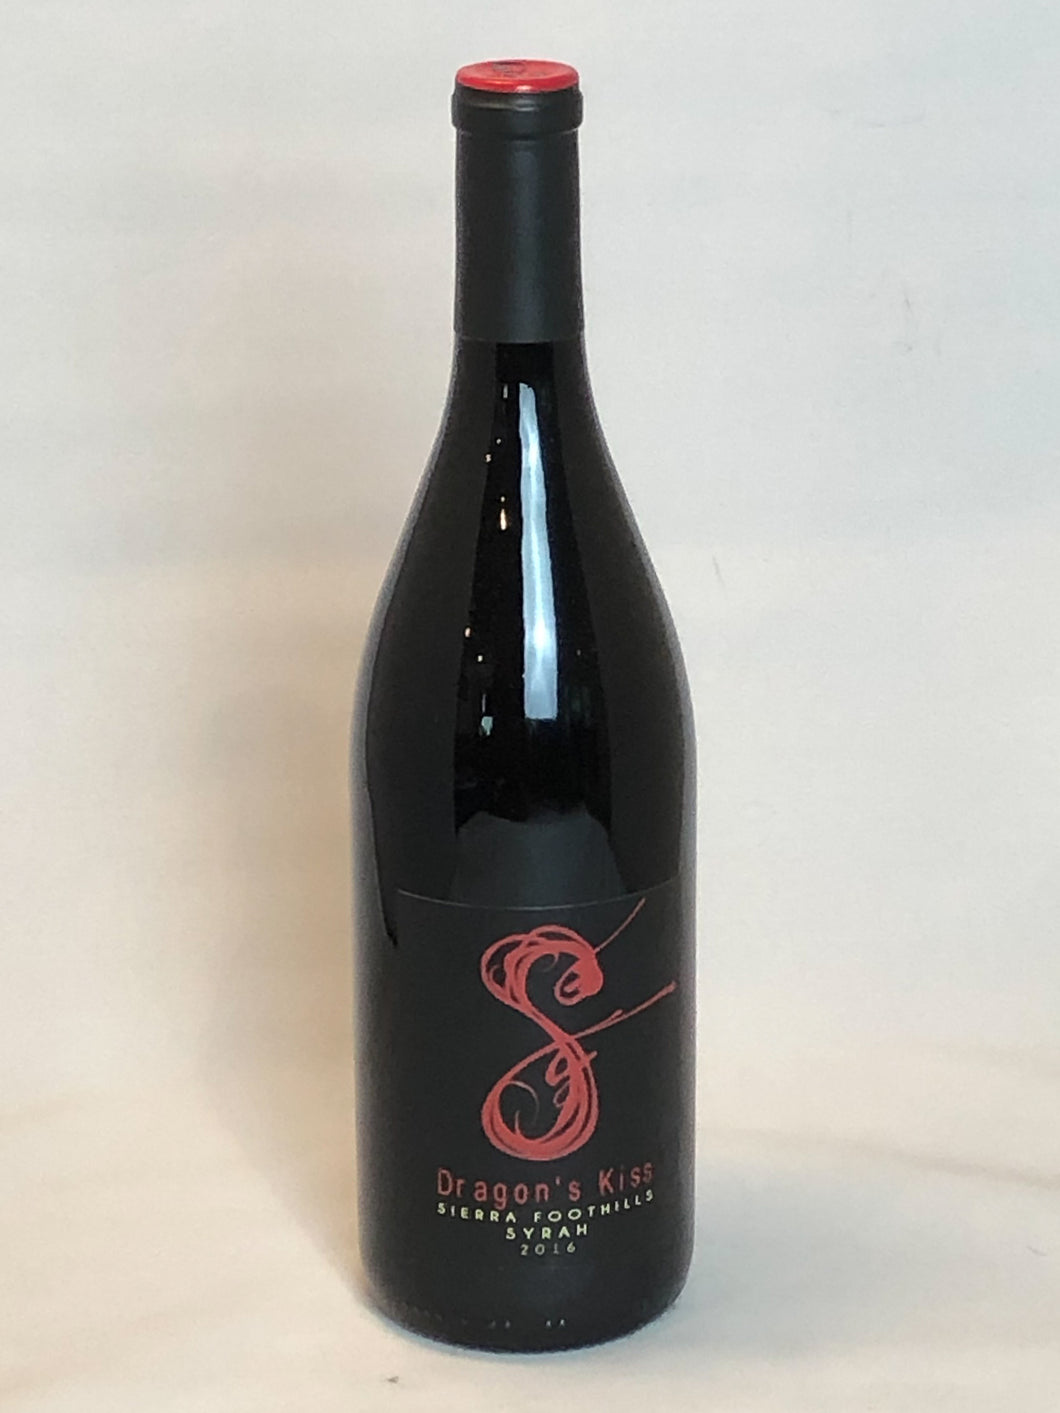 Spicy Vines – 2016 Dragons Kiss Syrah